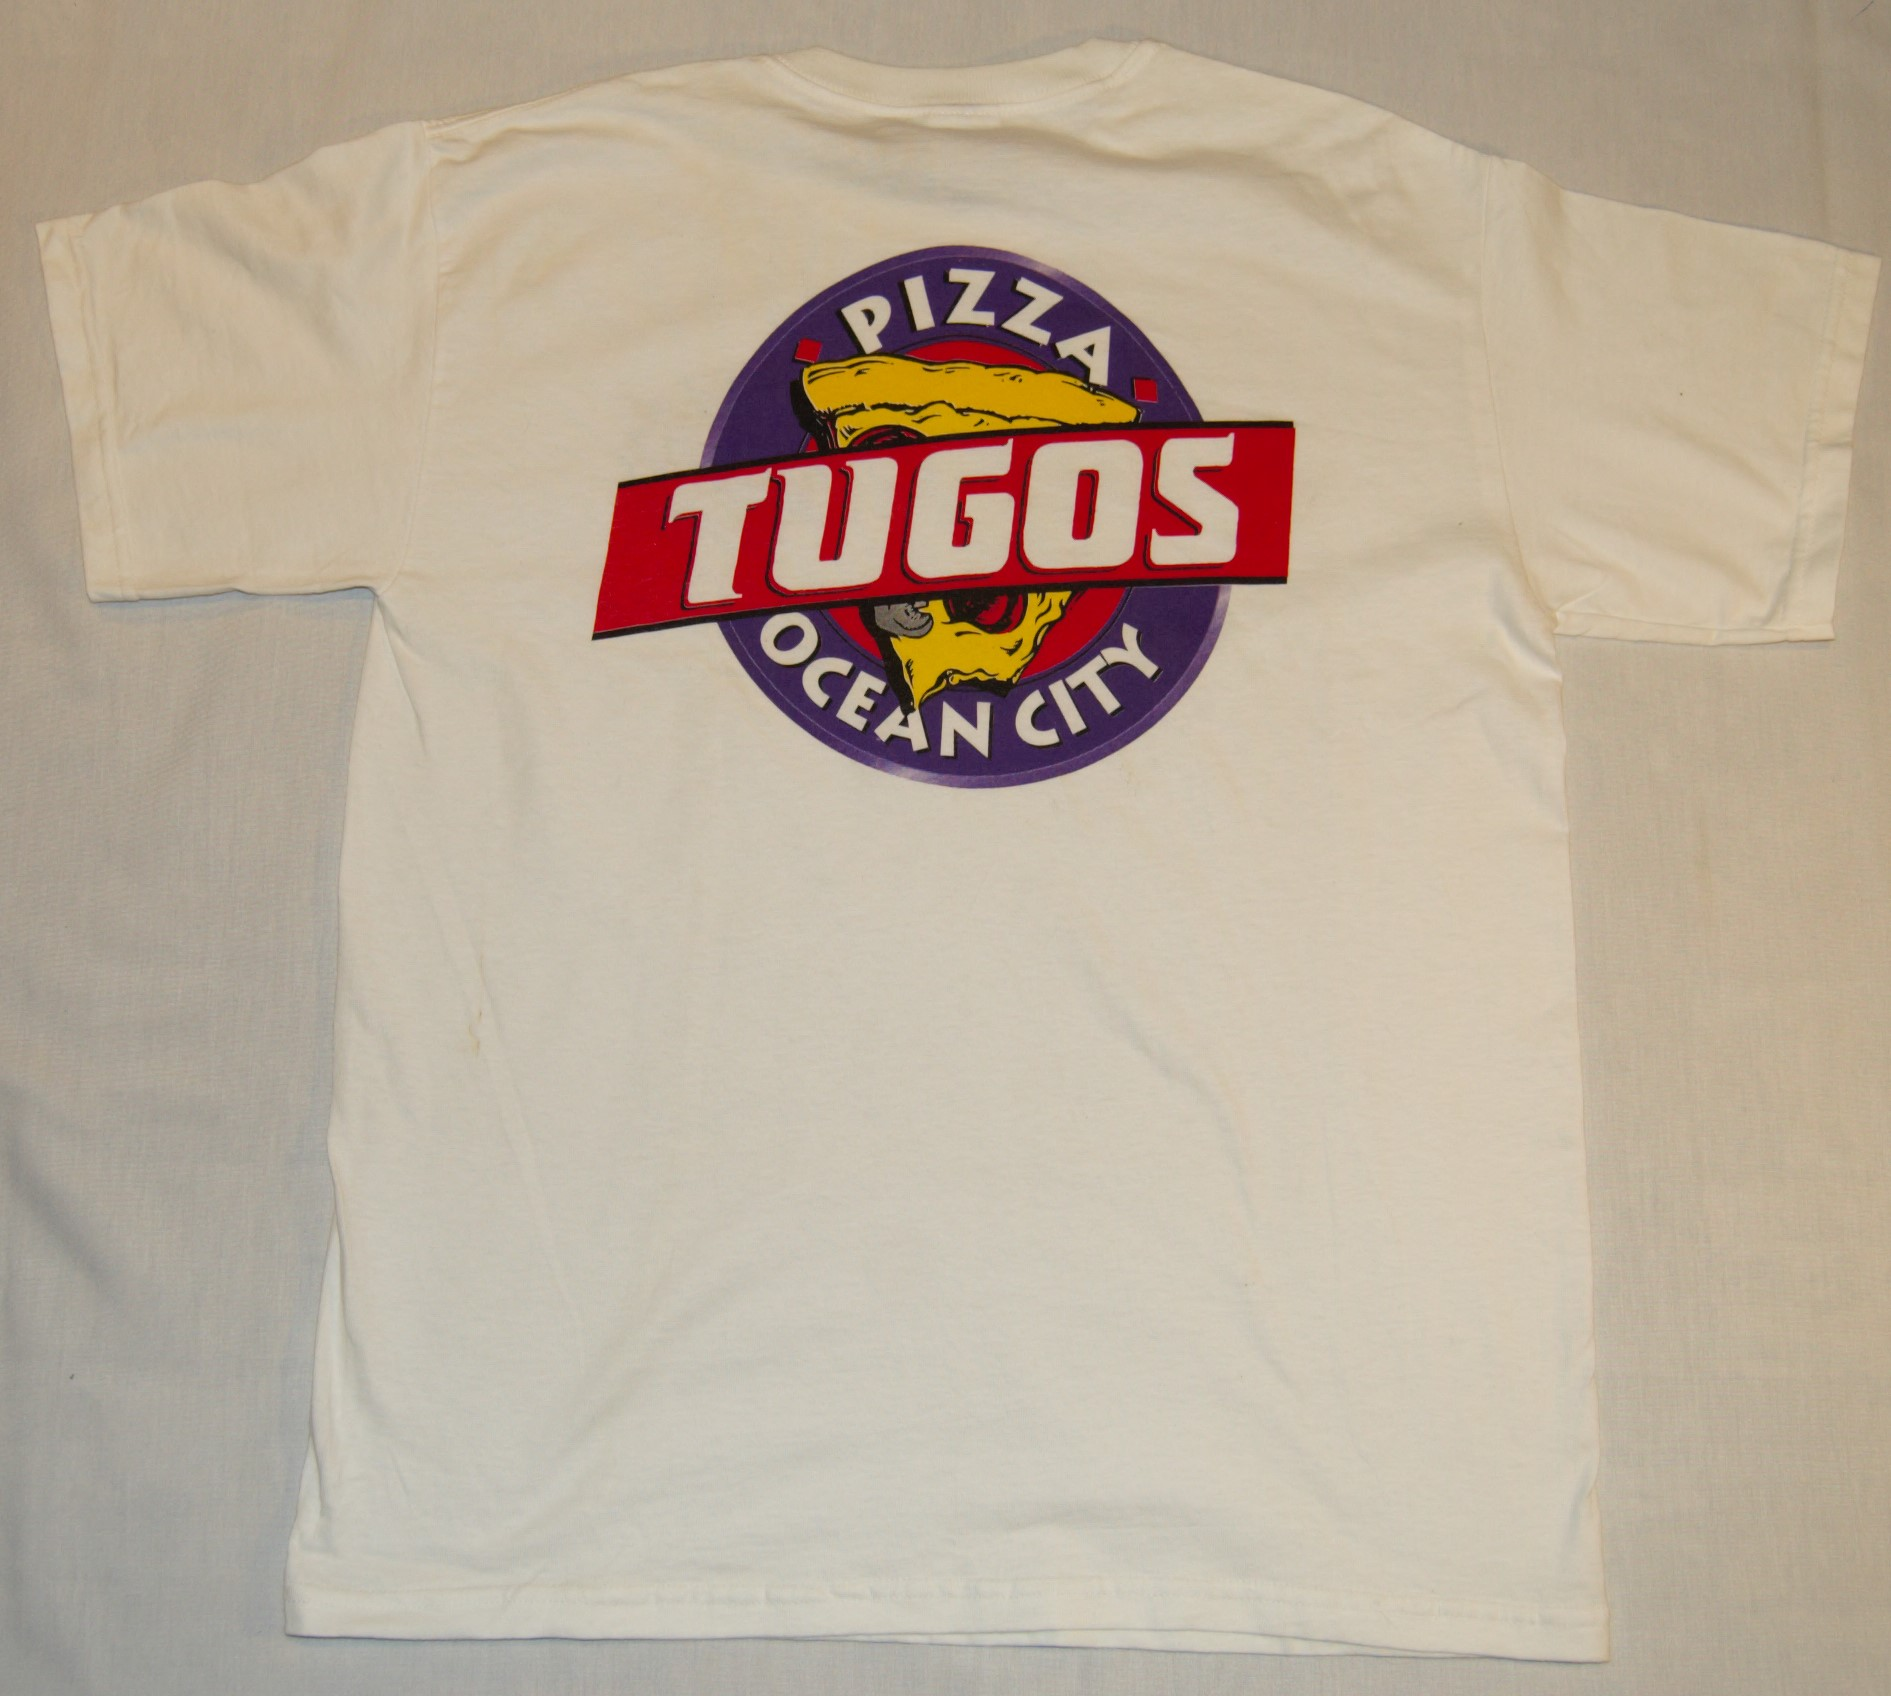 Pizza Tugos Classic Shirt Back